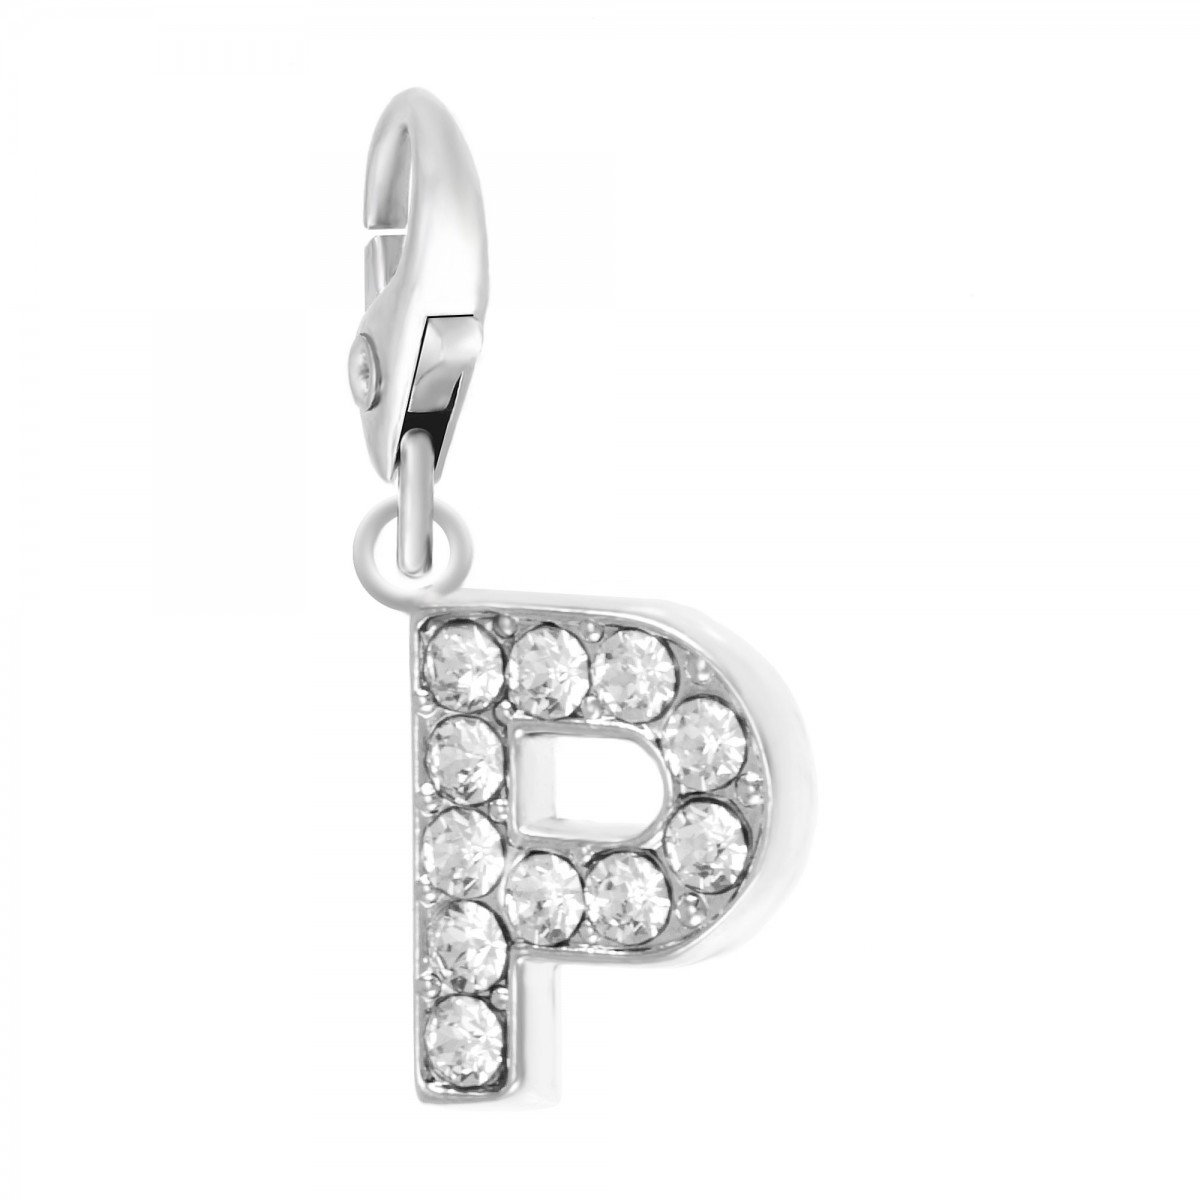 Charm Lettre P So Charm made with Crystal from Swarovski